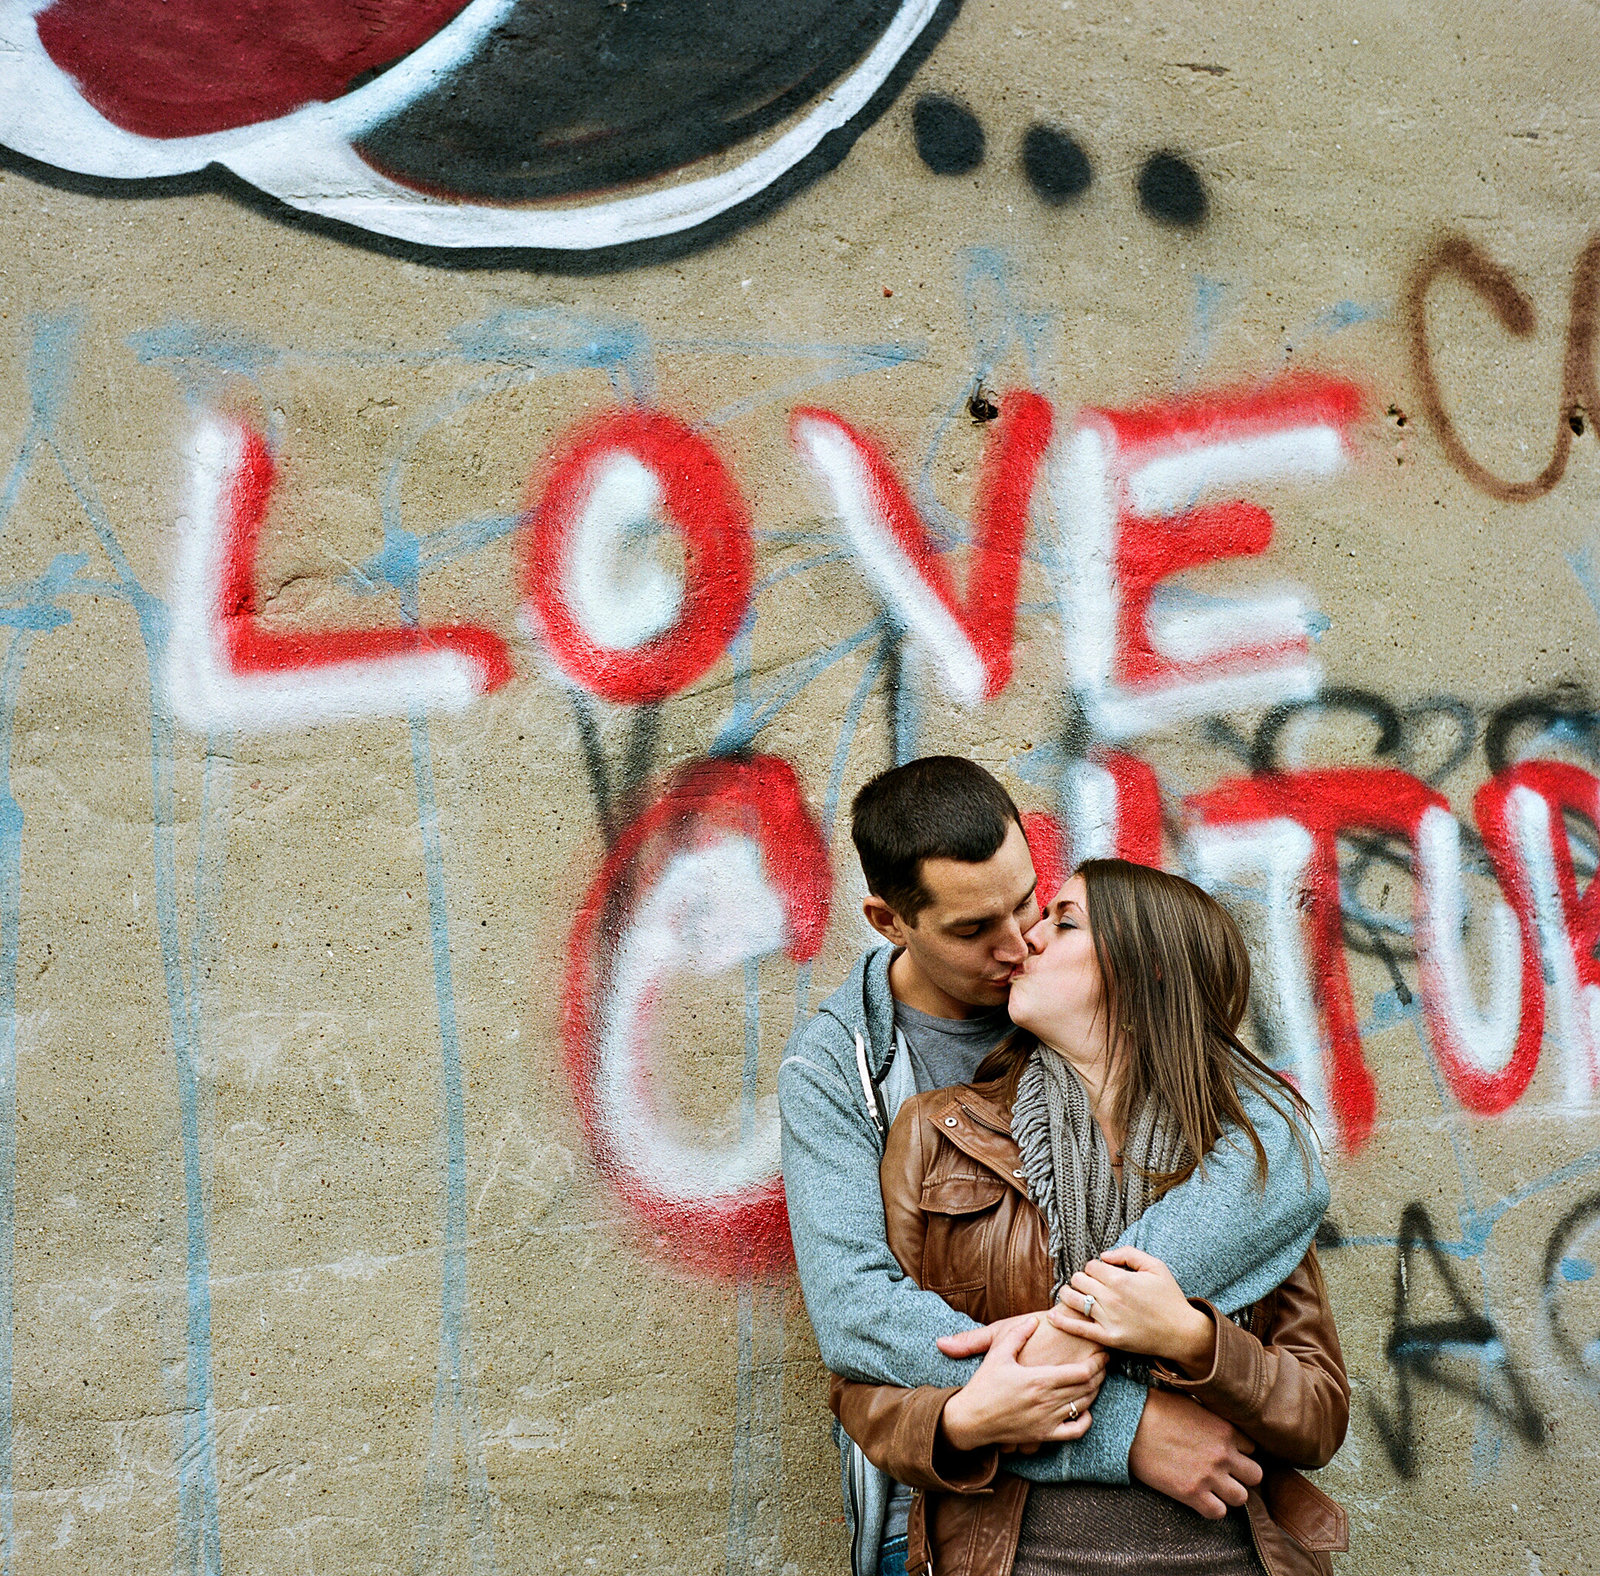 A couple kiss with the word love written on the wall behind them.